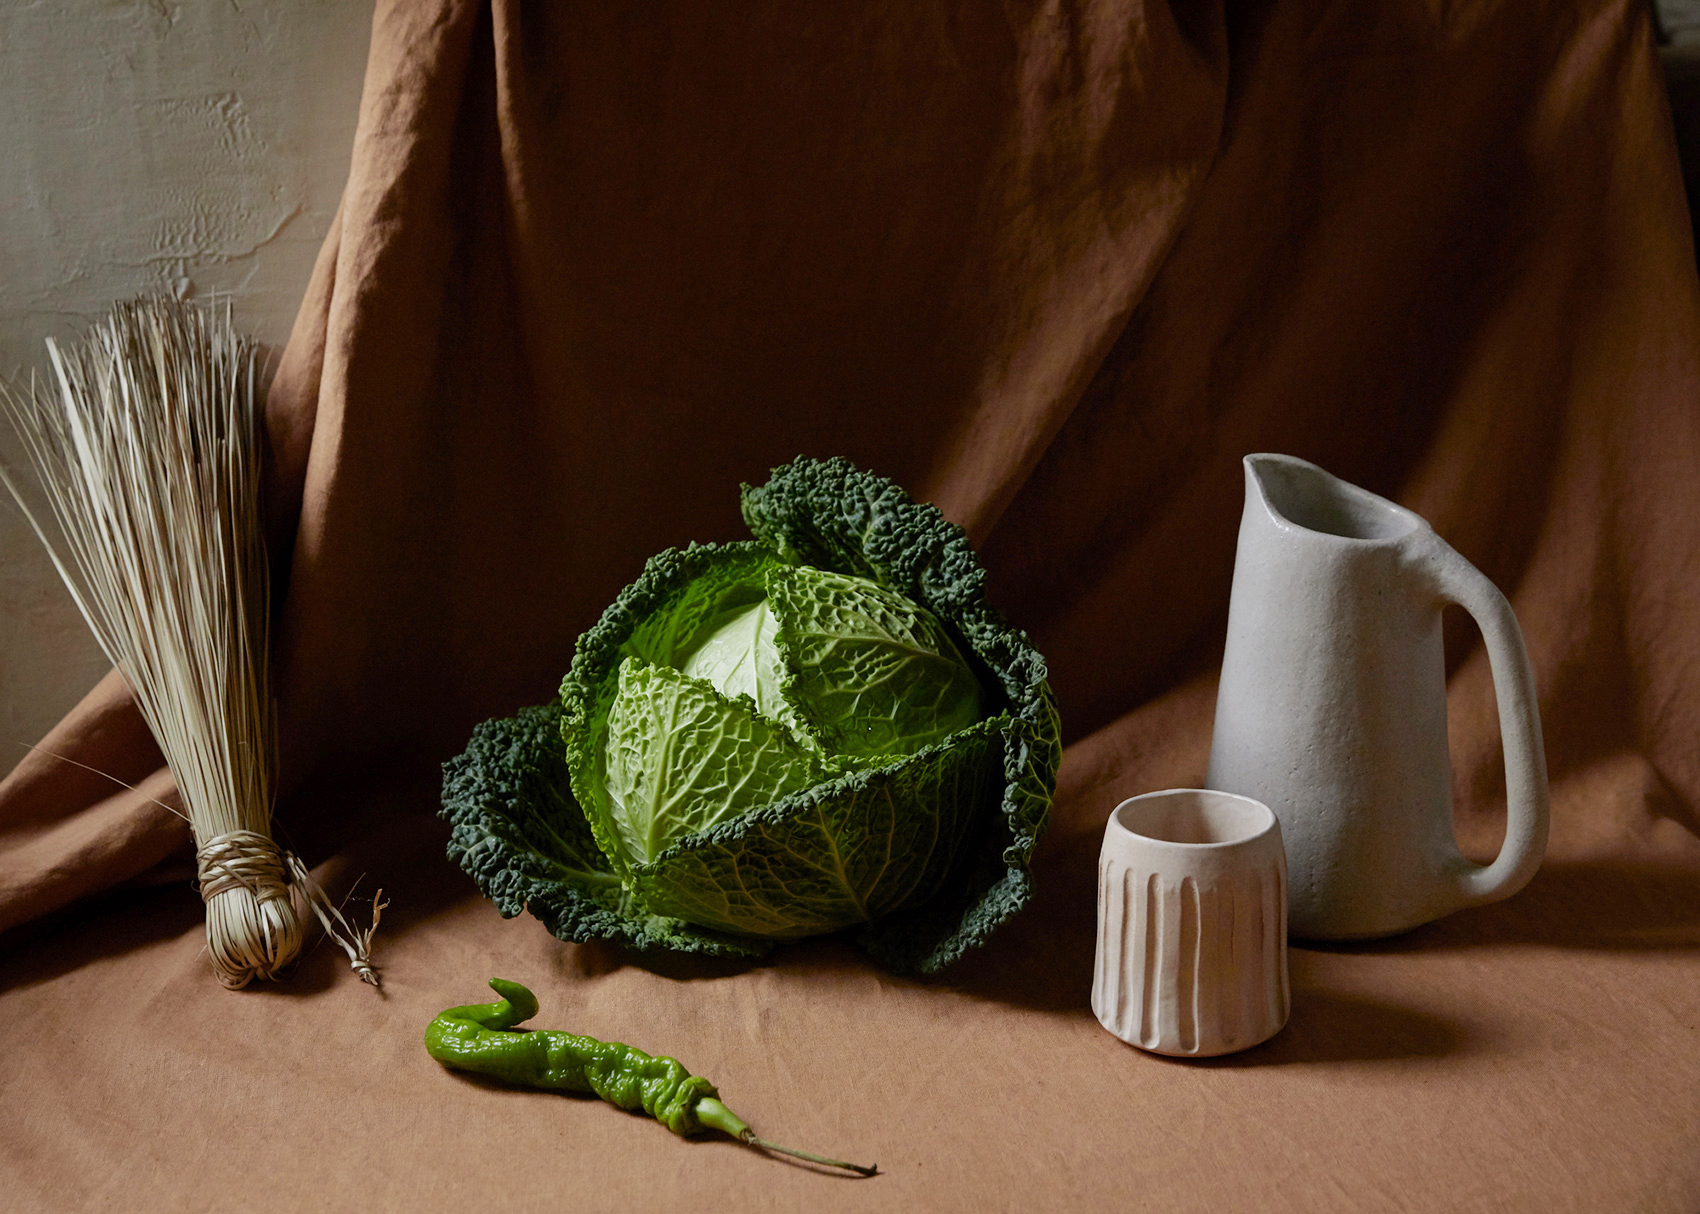 Ceramics_Still_Life_Photography_Brooklyn_George_Barberis_004.jpg